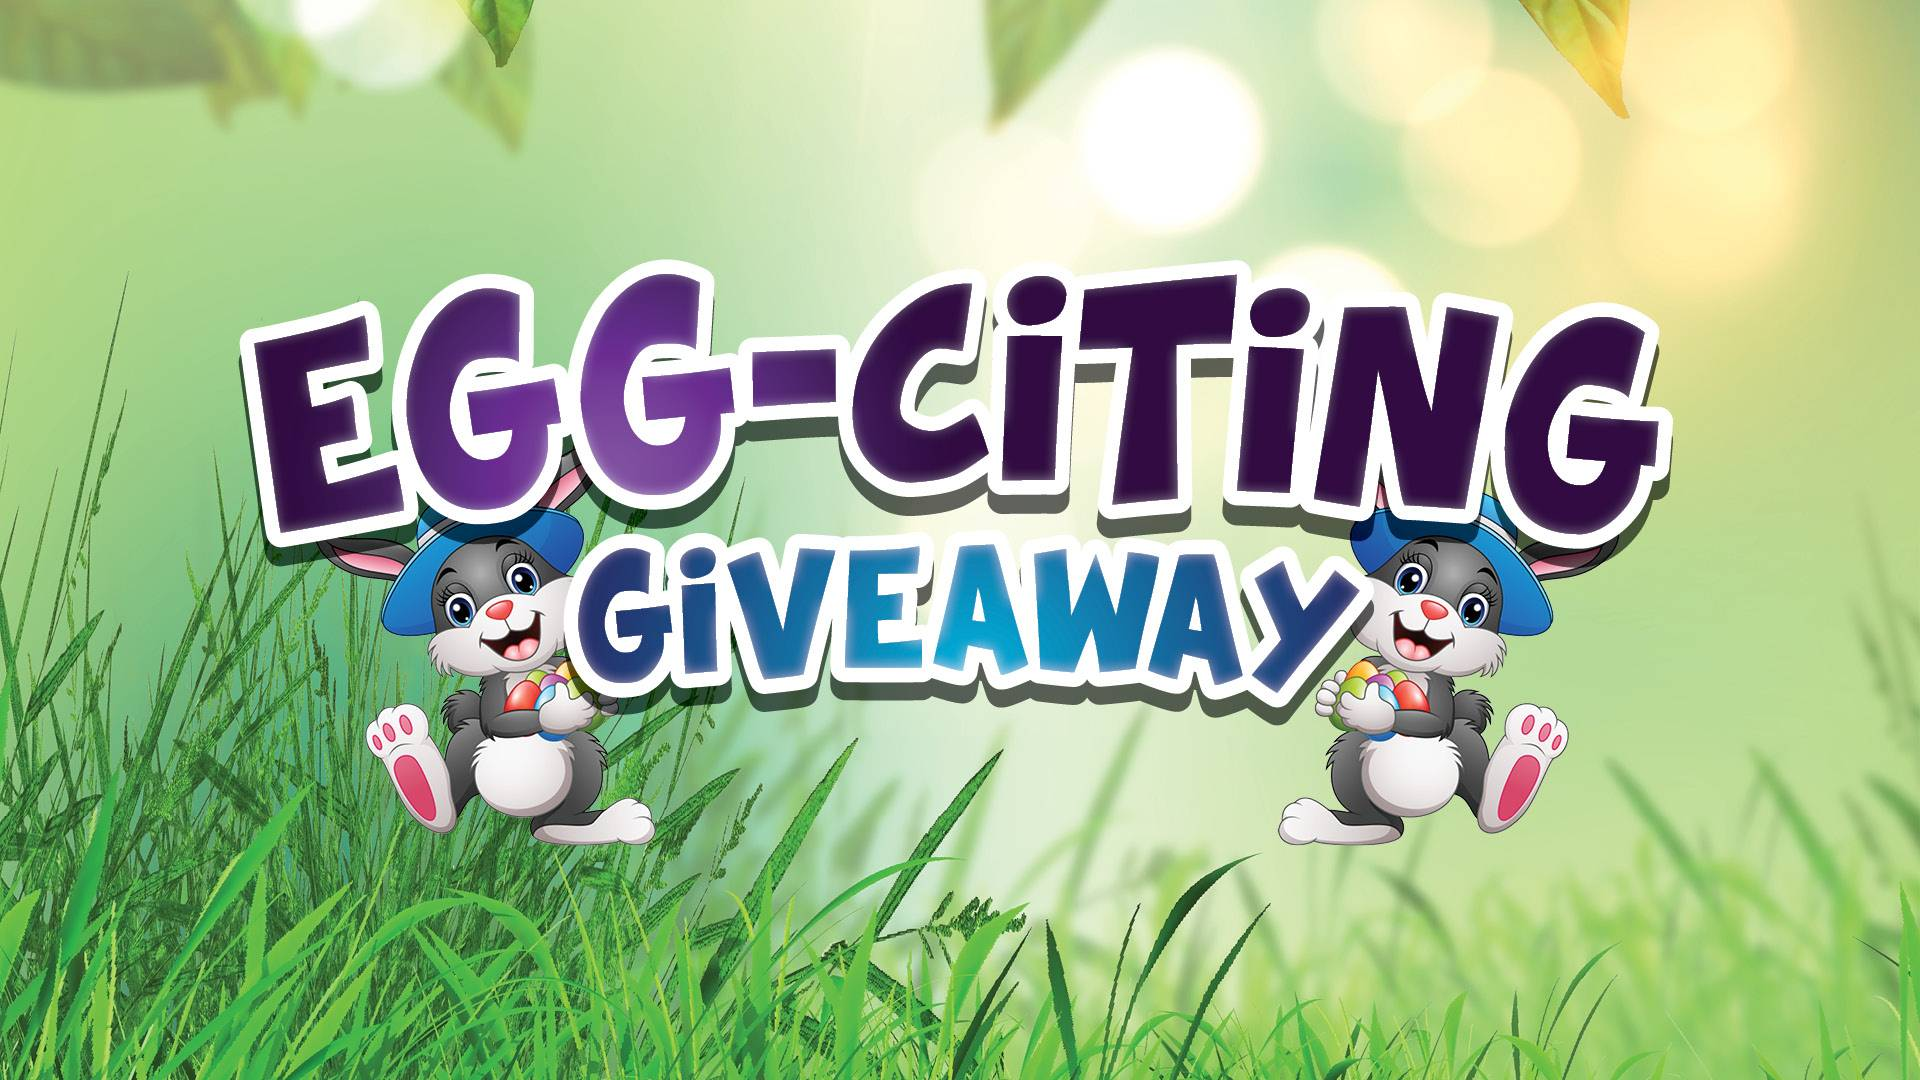 Egg-citing Giveaway